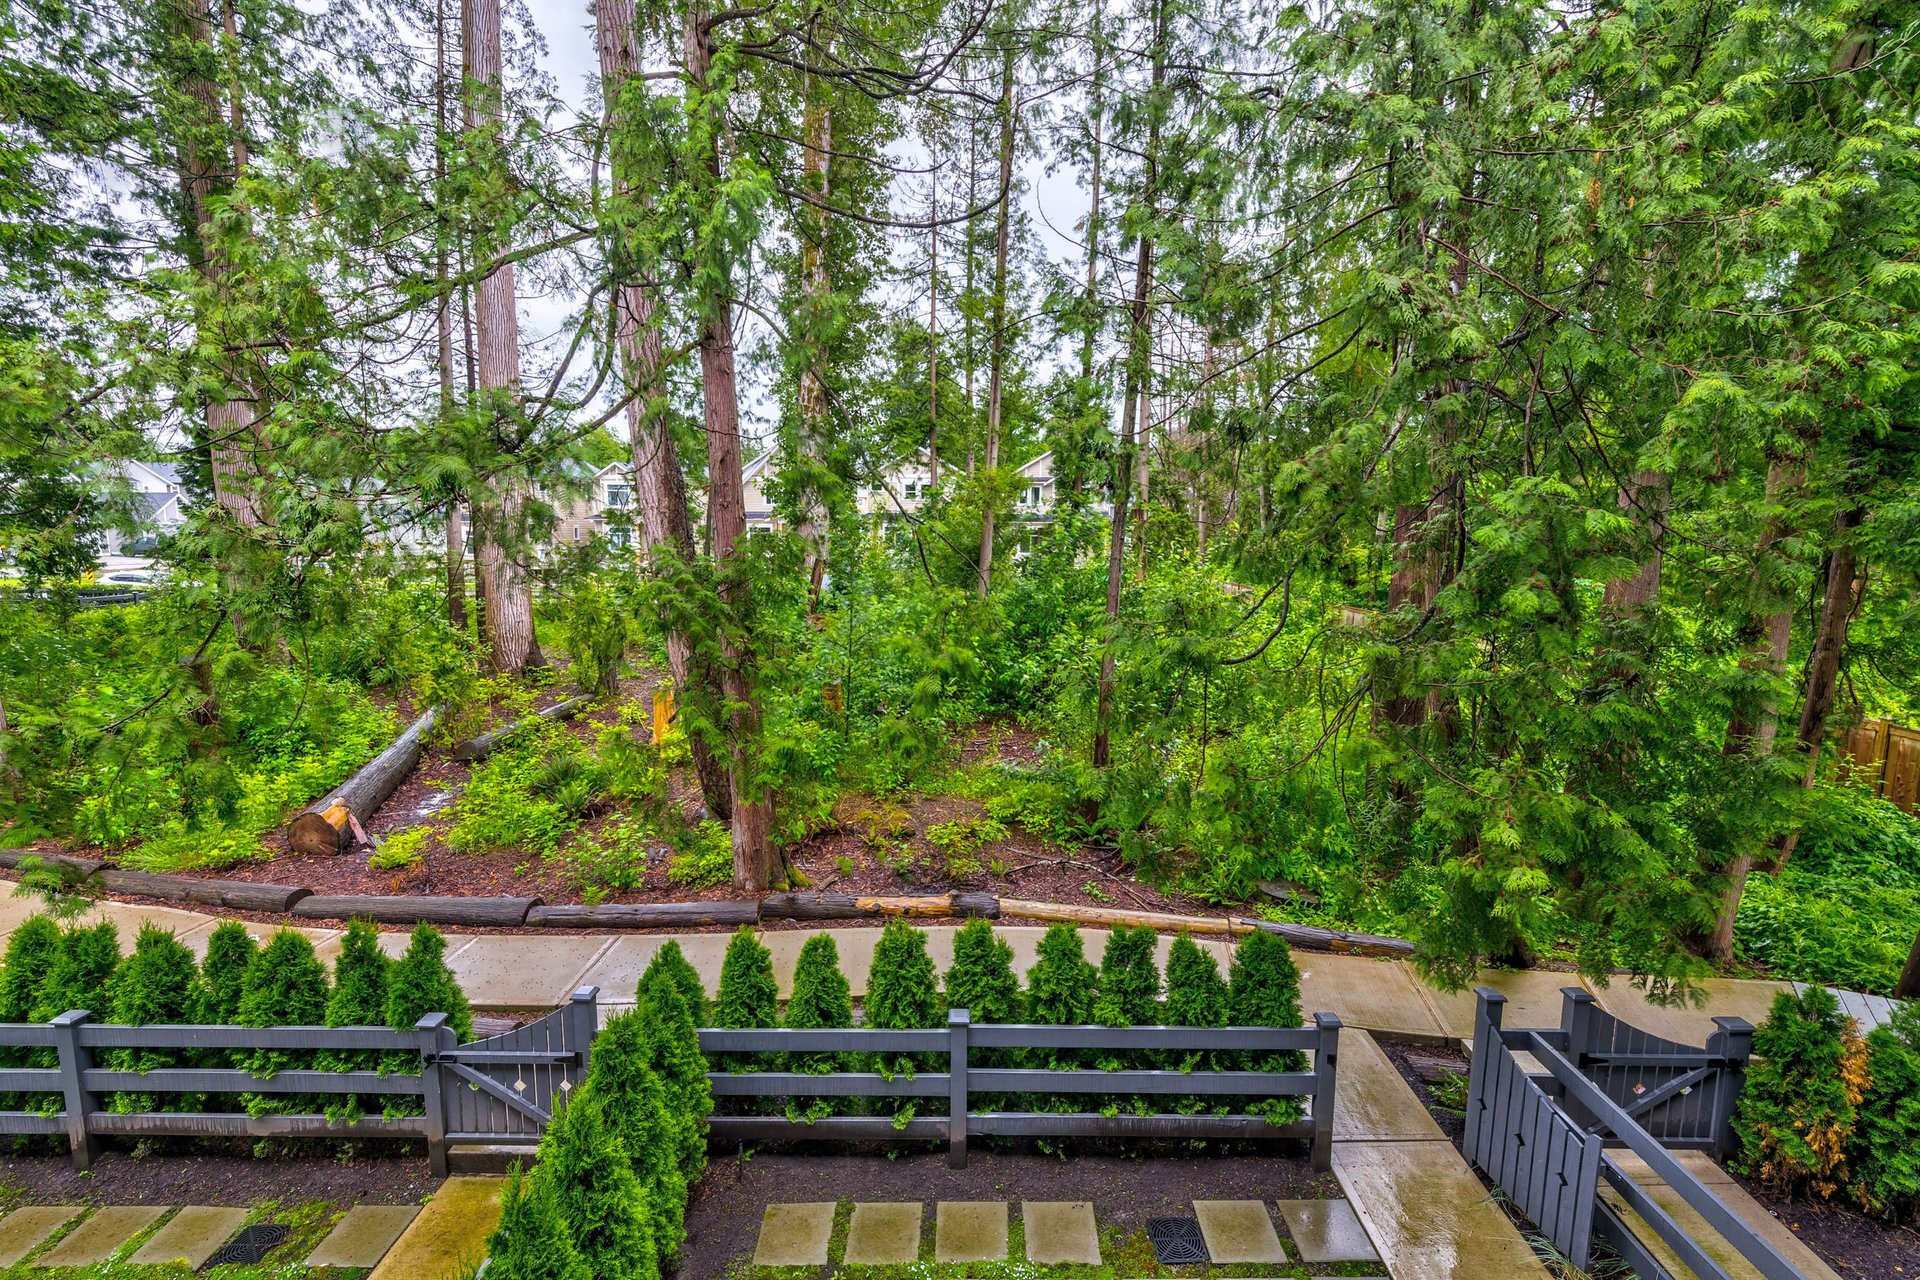 Green Space   at 22 - 127 172 Street, Pacific Douglas, South Surrey White Rock